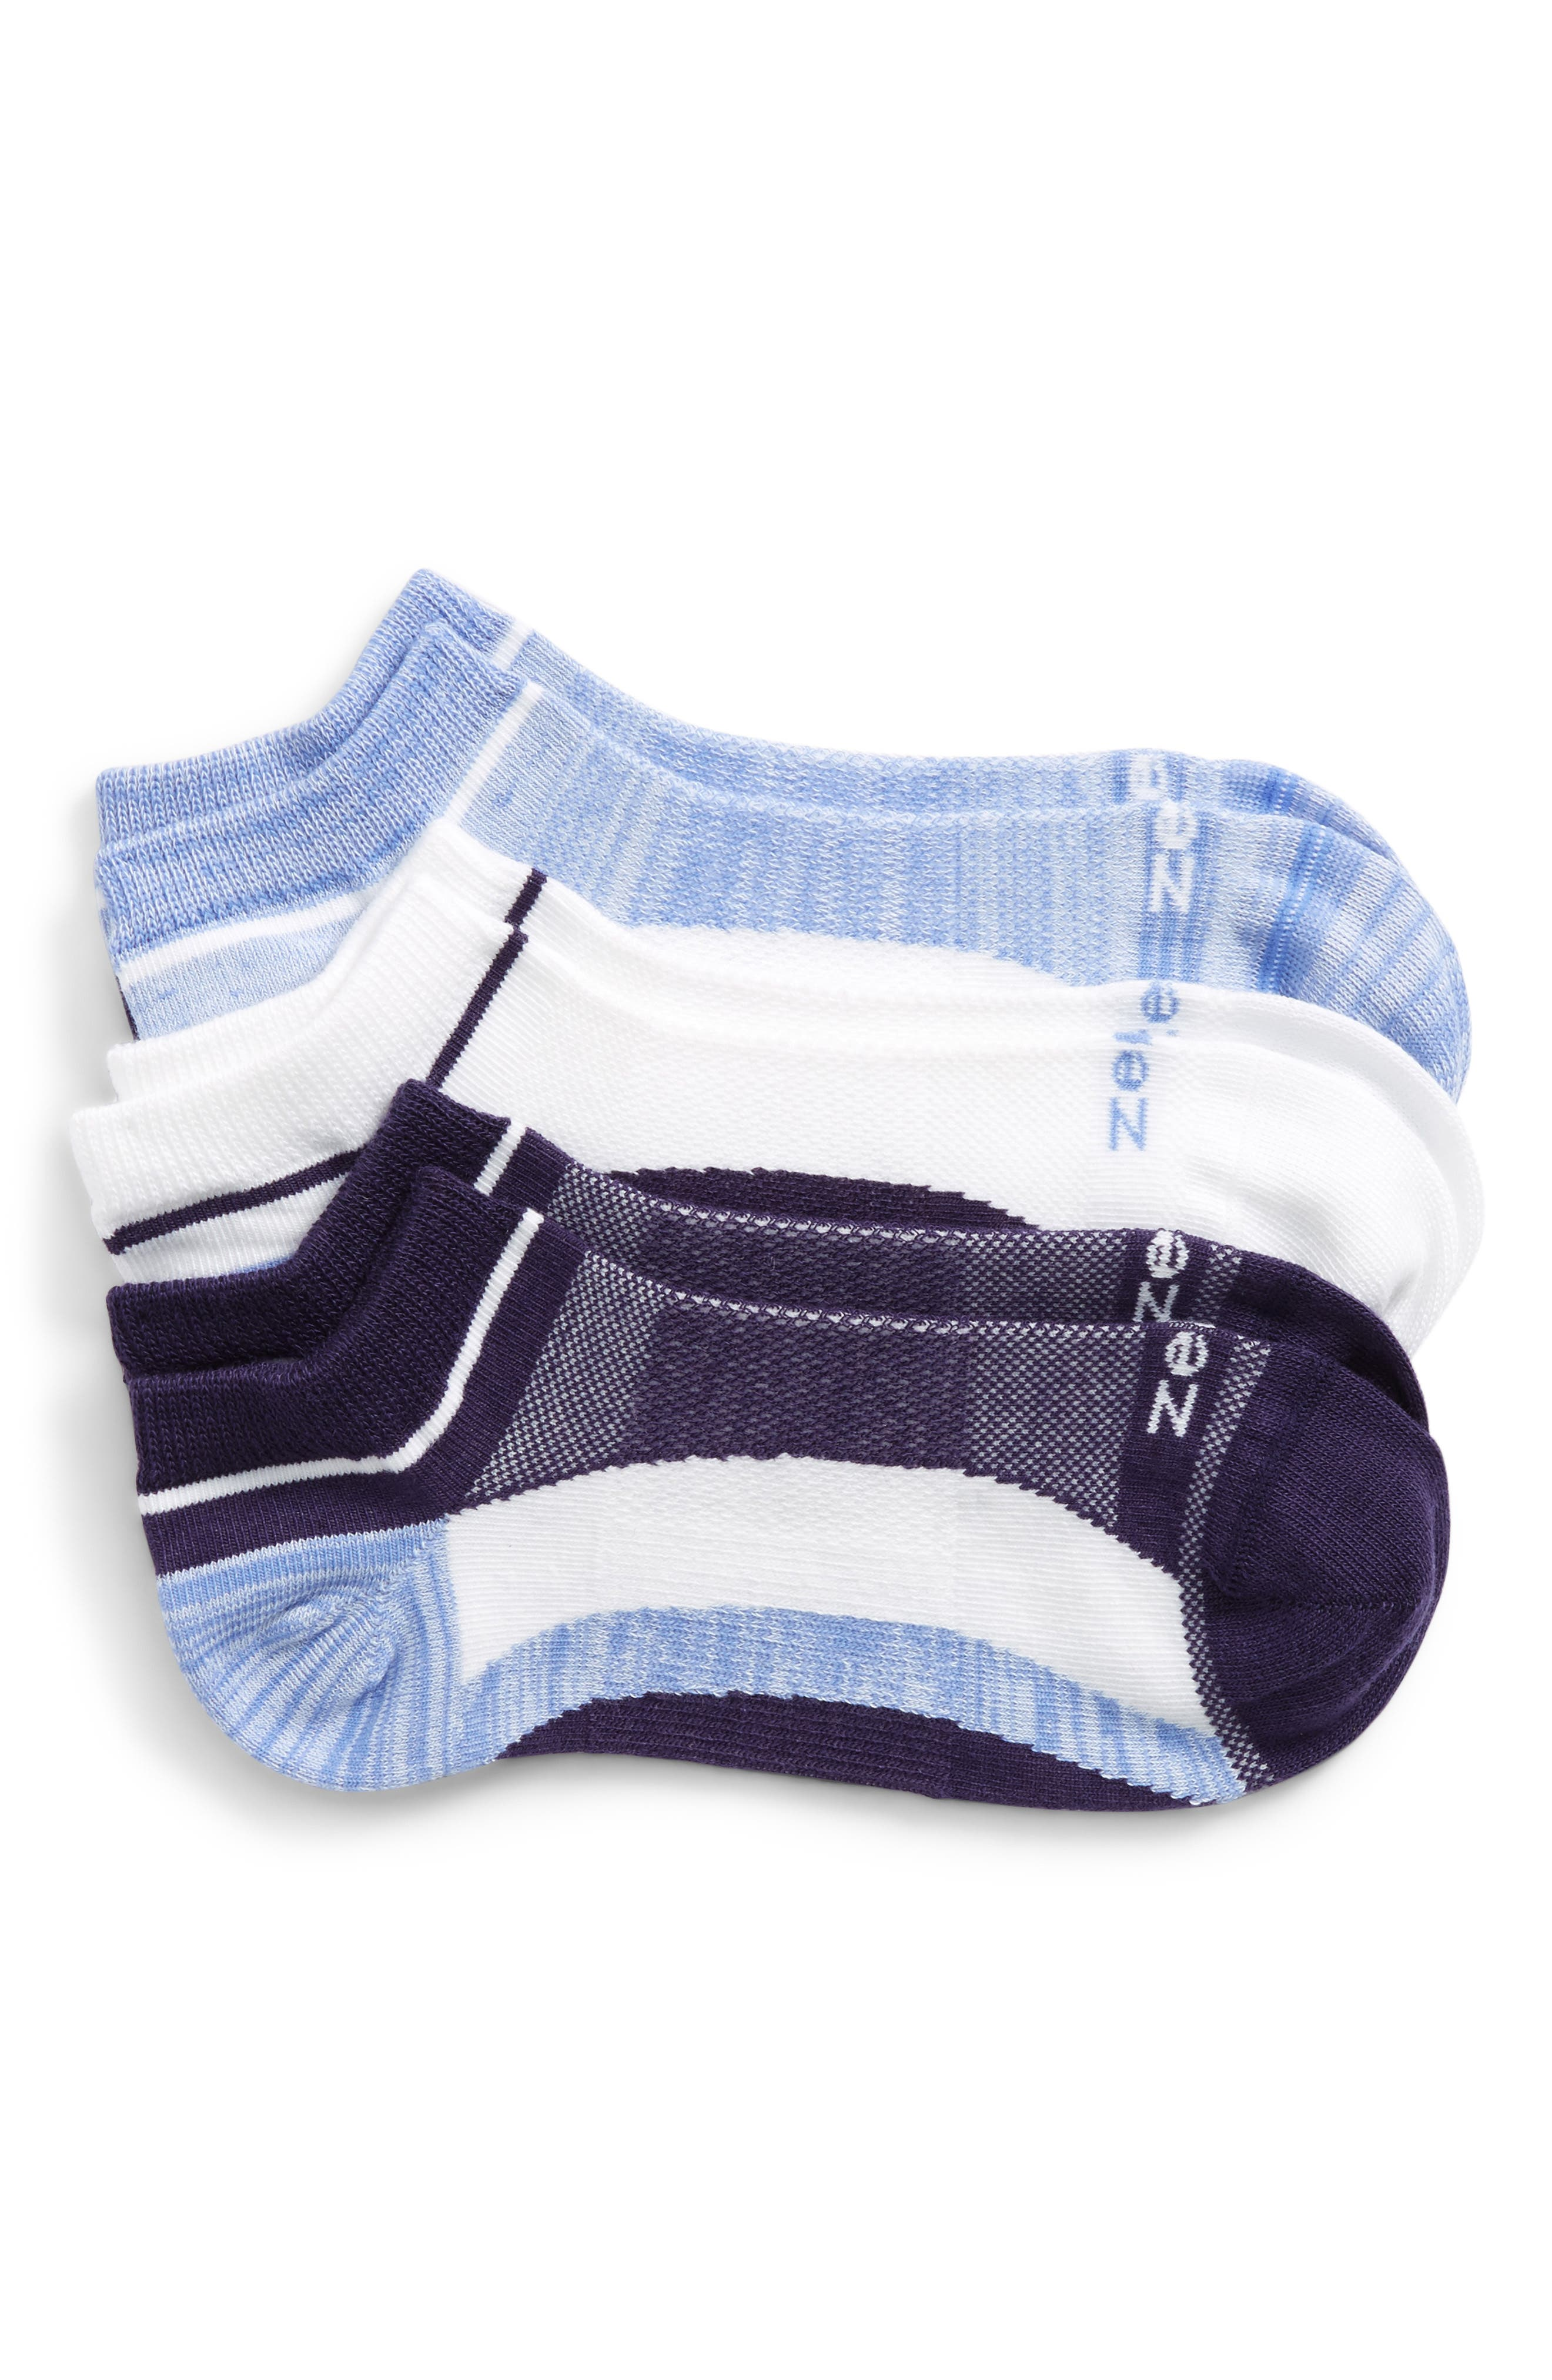 Zella 'Fitness' Liner Socks (3-Pack)